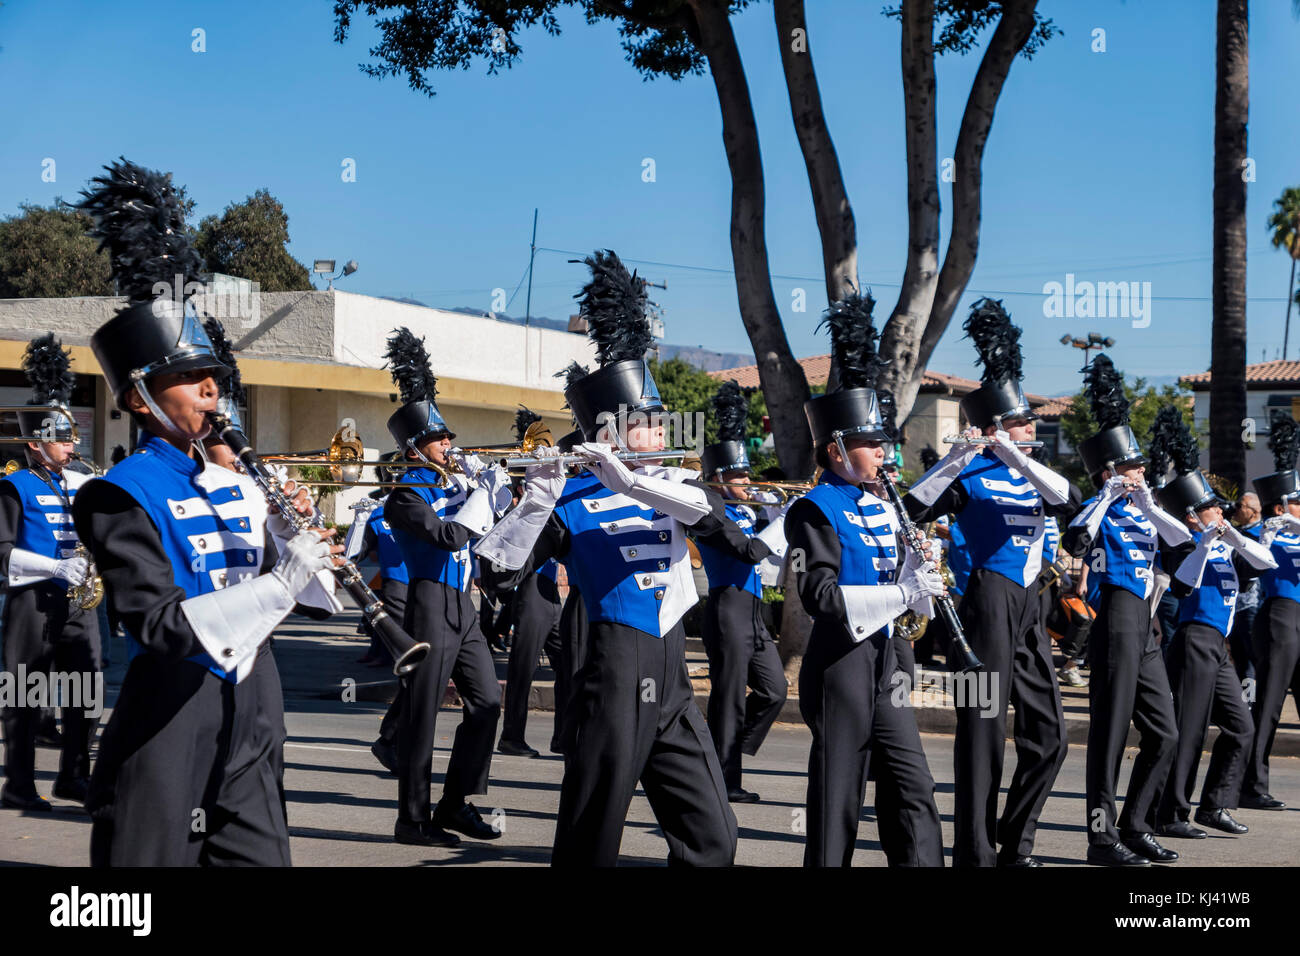 Arcadia, NOV 19: The famous Arcadia Festival of Bands parade on NOV 19, 2017 at Arcadia, Los Angeles County, California, - Stock Image